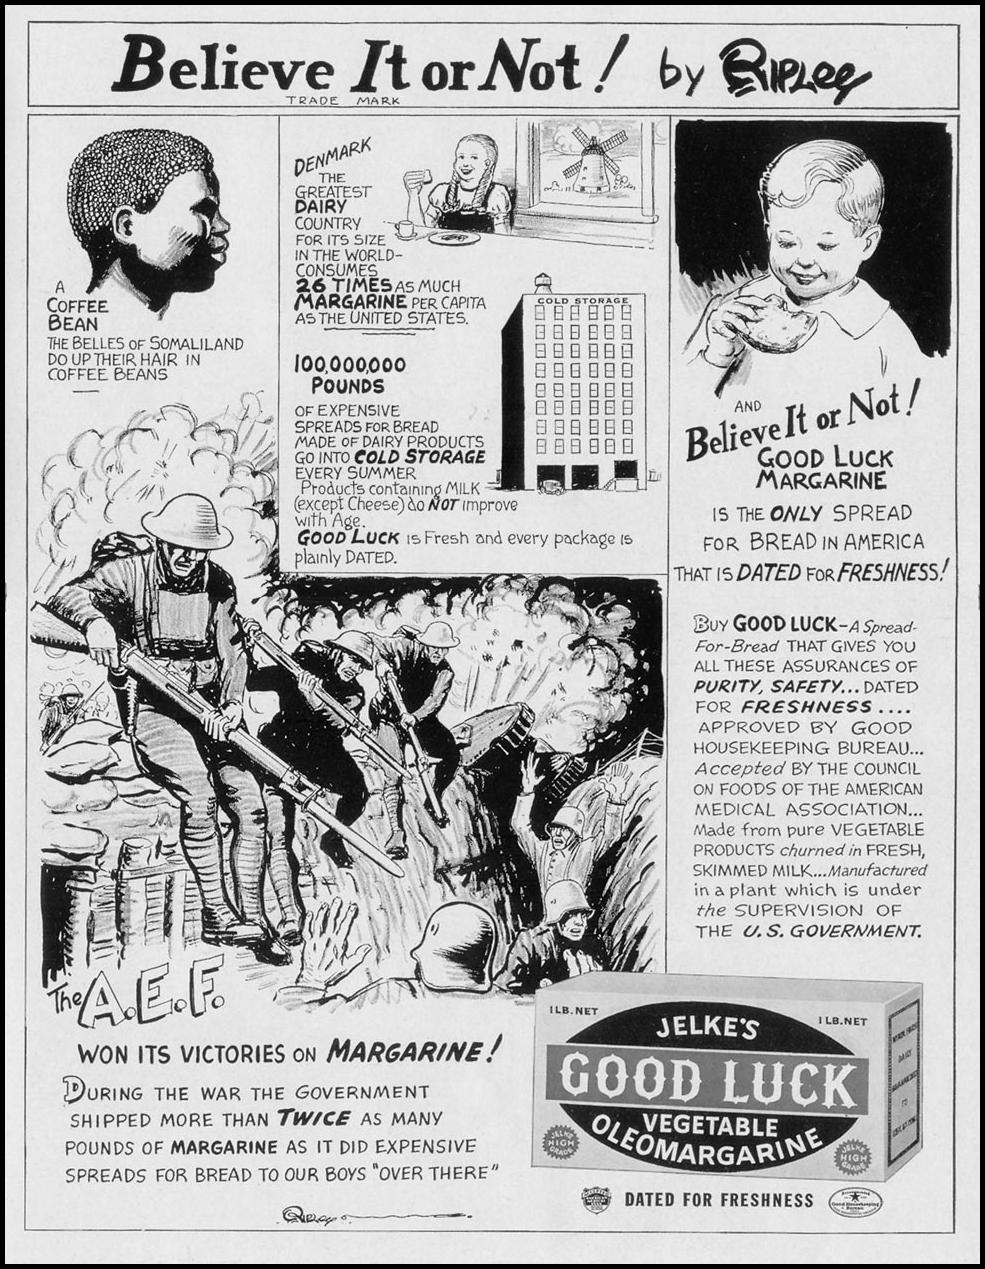 JELKE'S GOOD LUCK VEGETABLE OLEOMARGARINE LIFE 09/27/1937 p. 109